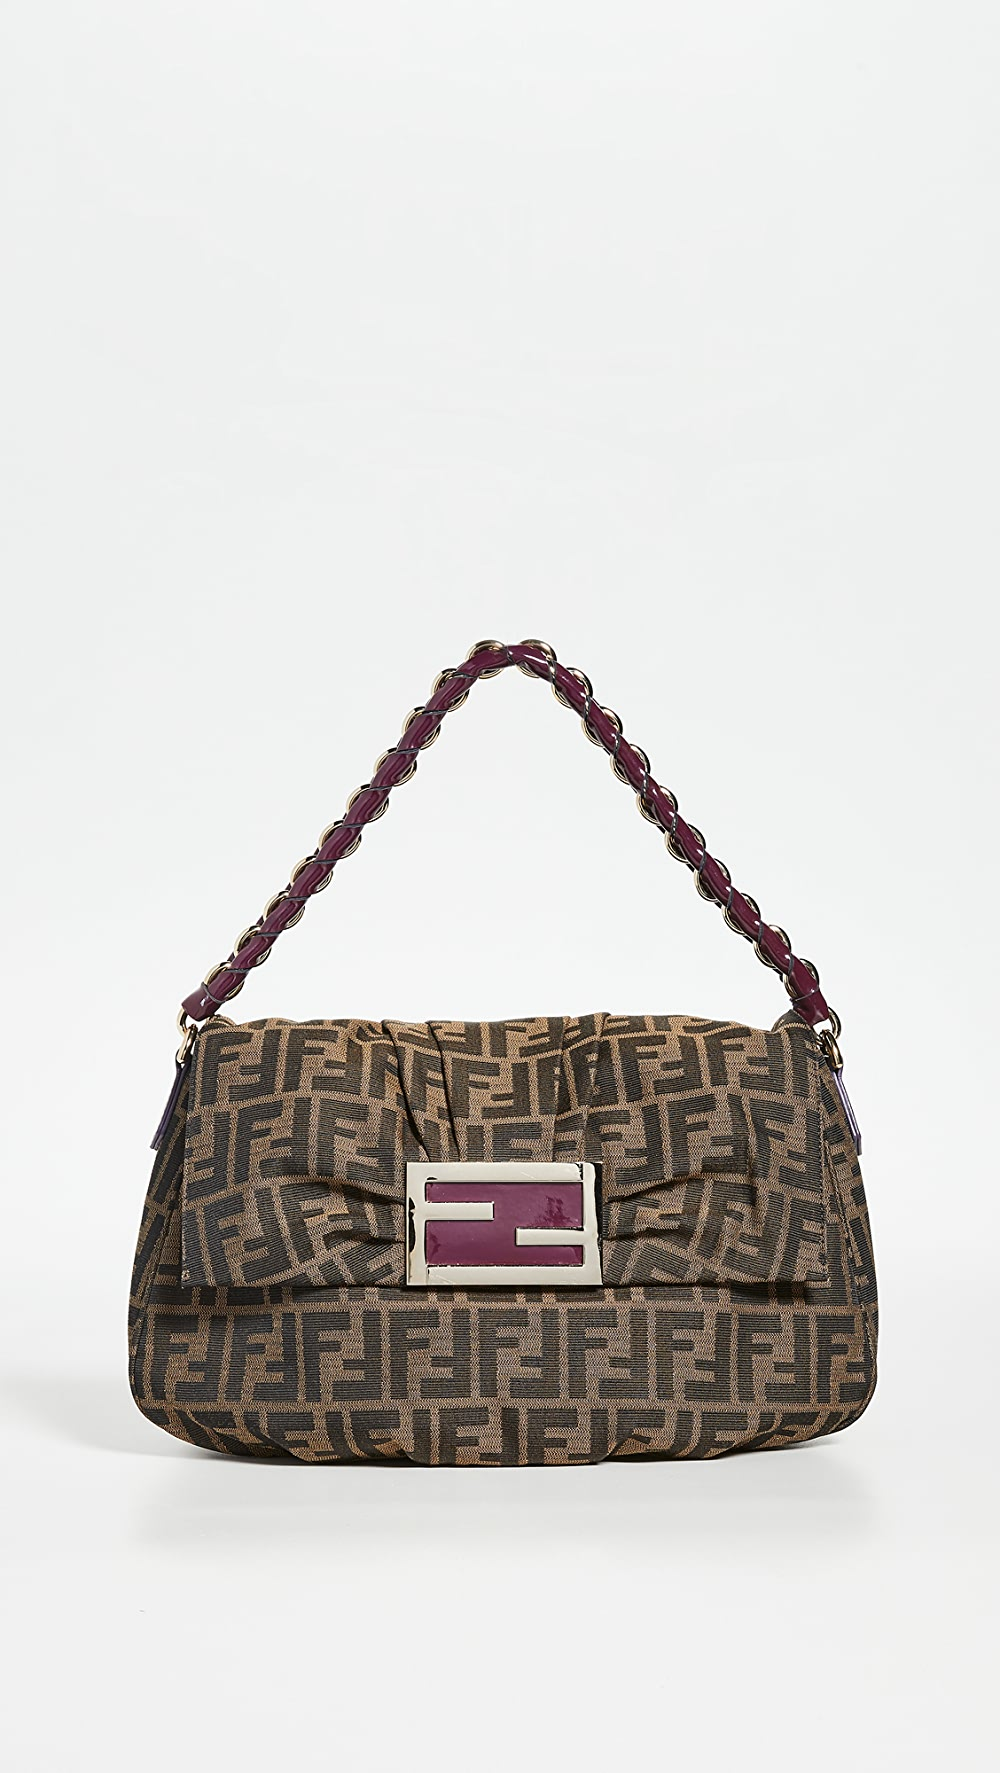 Charitable What Goes Around Comes Around - Fendi Purple Zucca Mia Shoulder Bag Drip-Dry